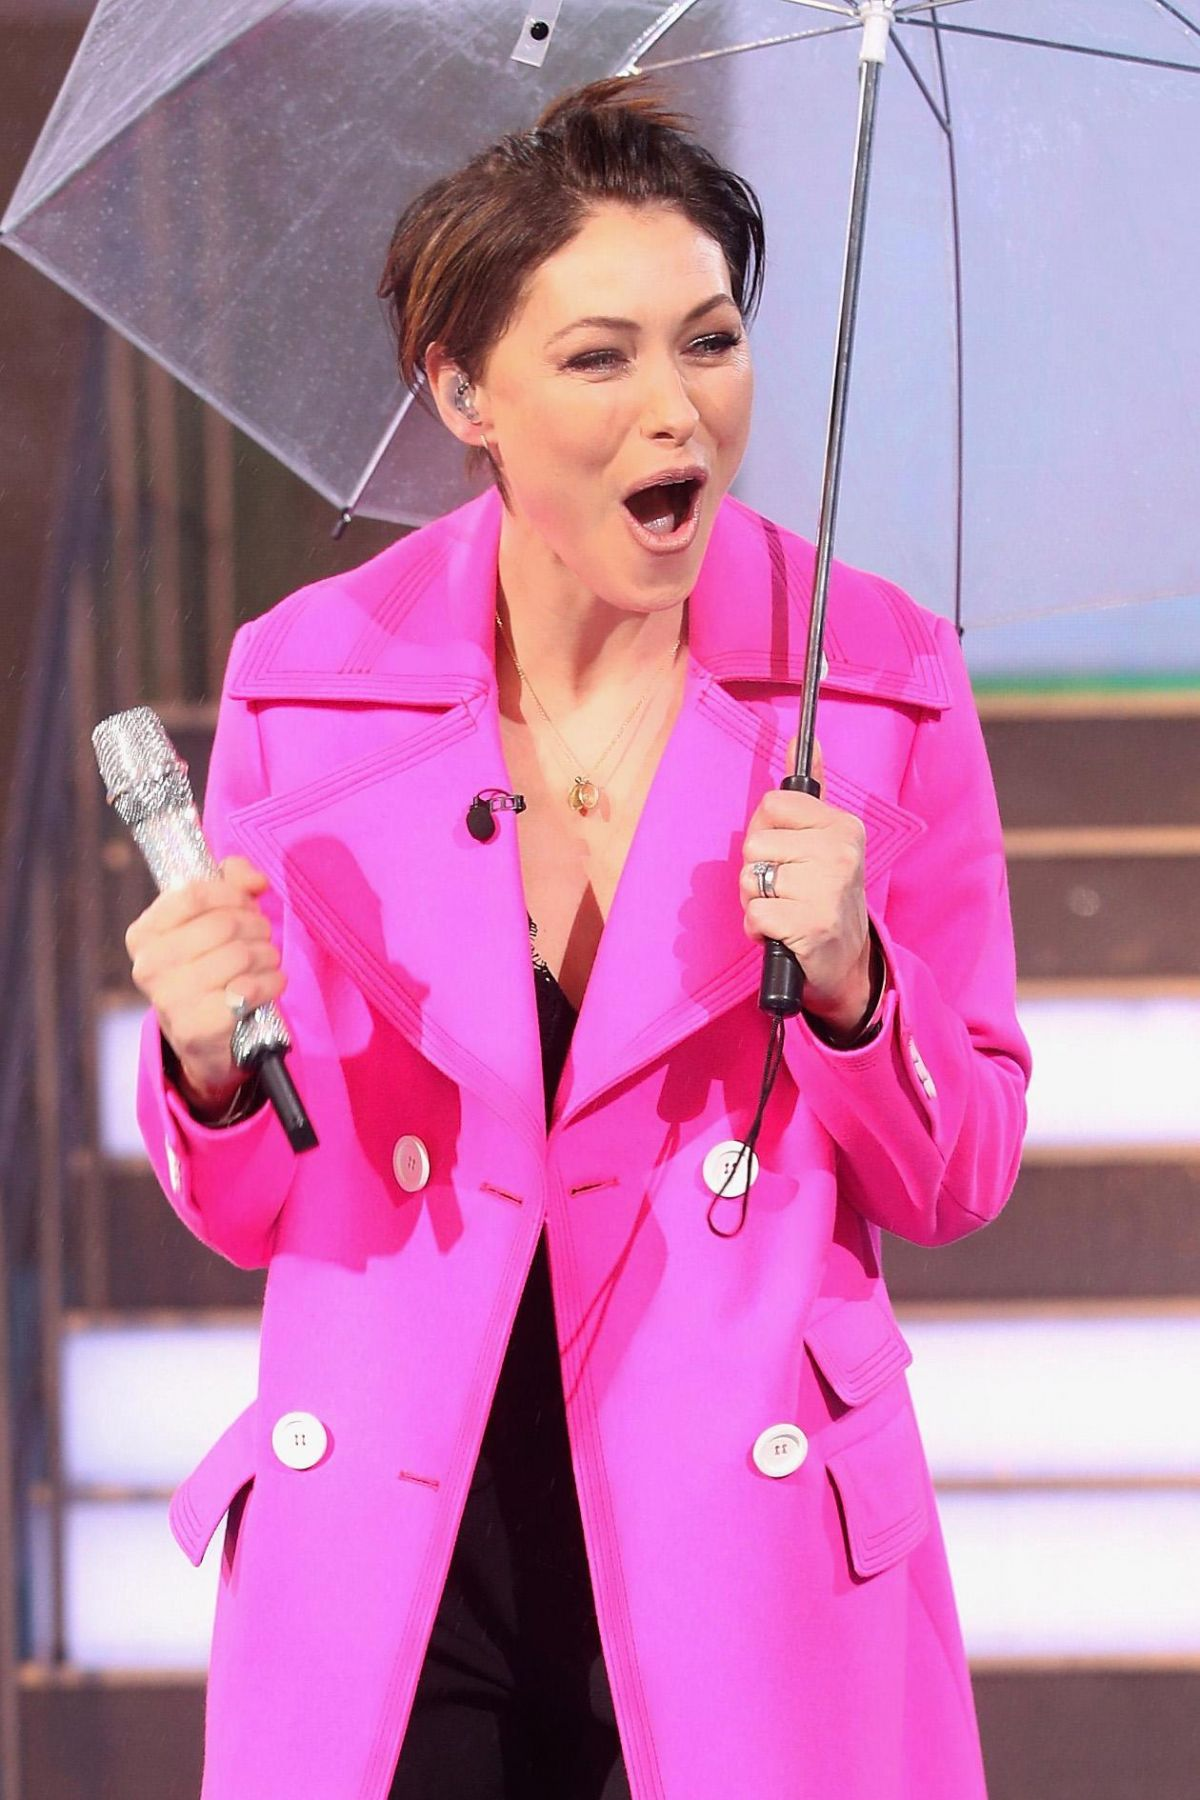 Emma willis celebrity big brother launch night in england new photo